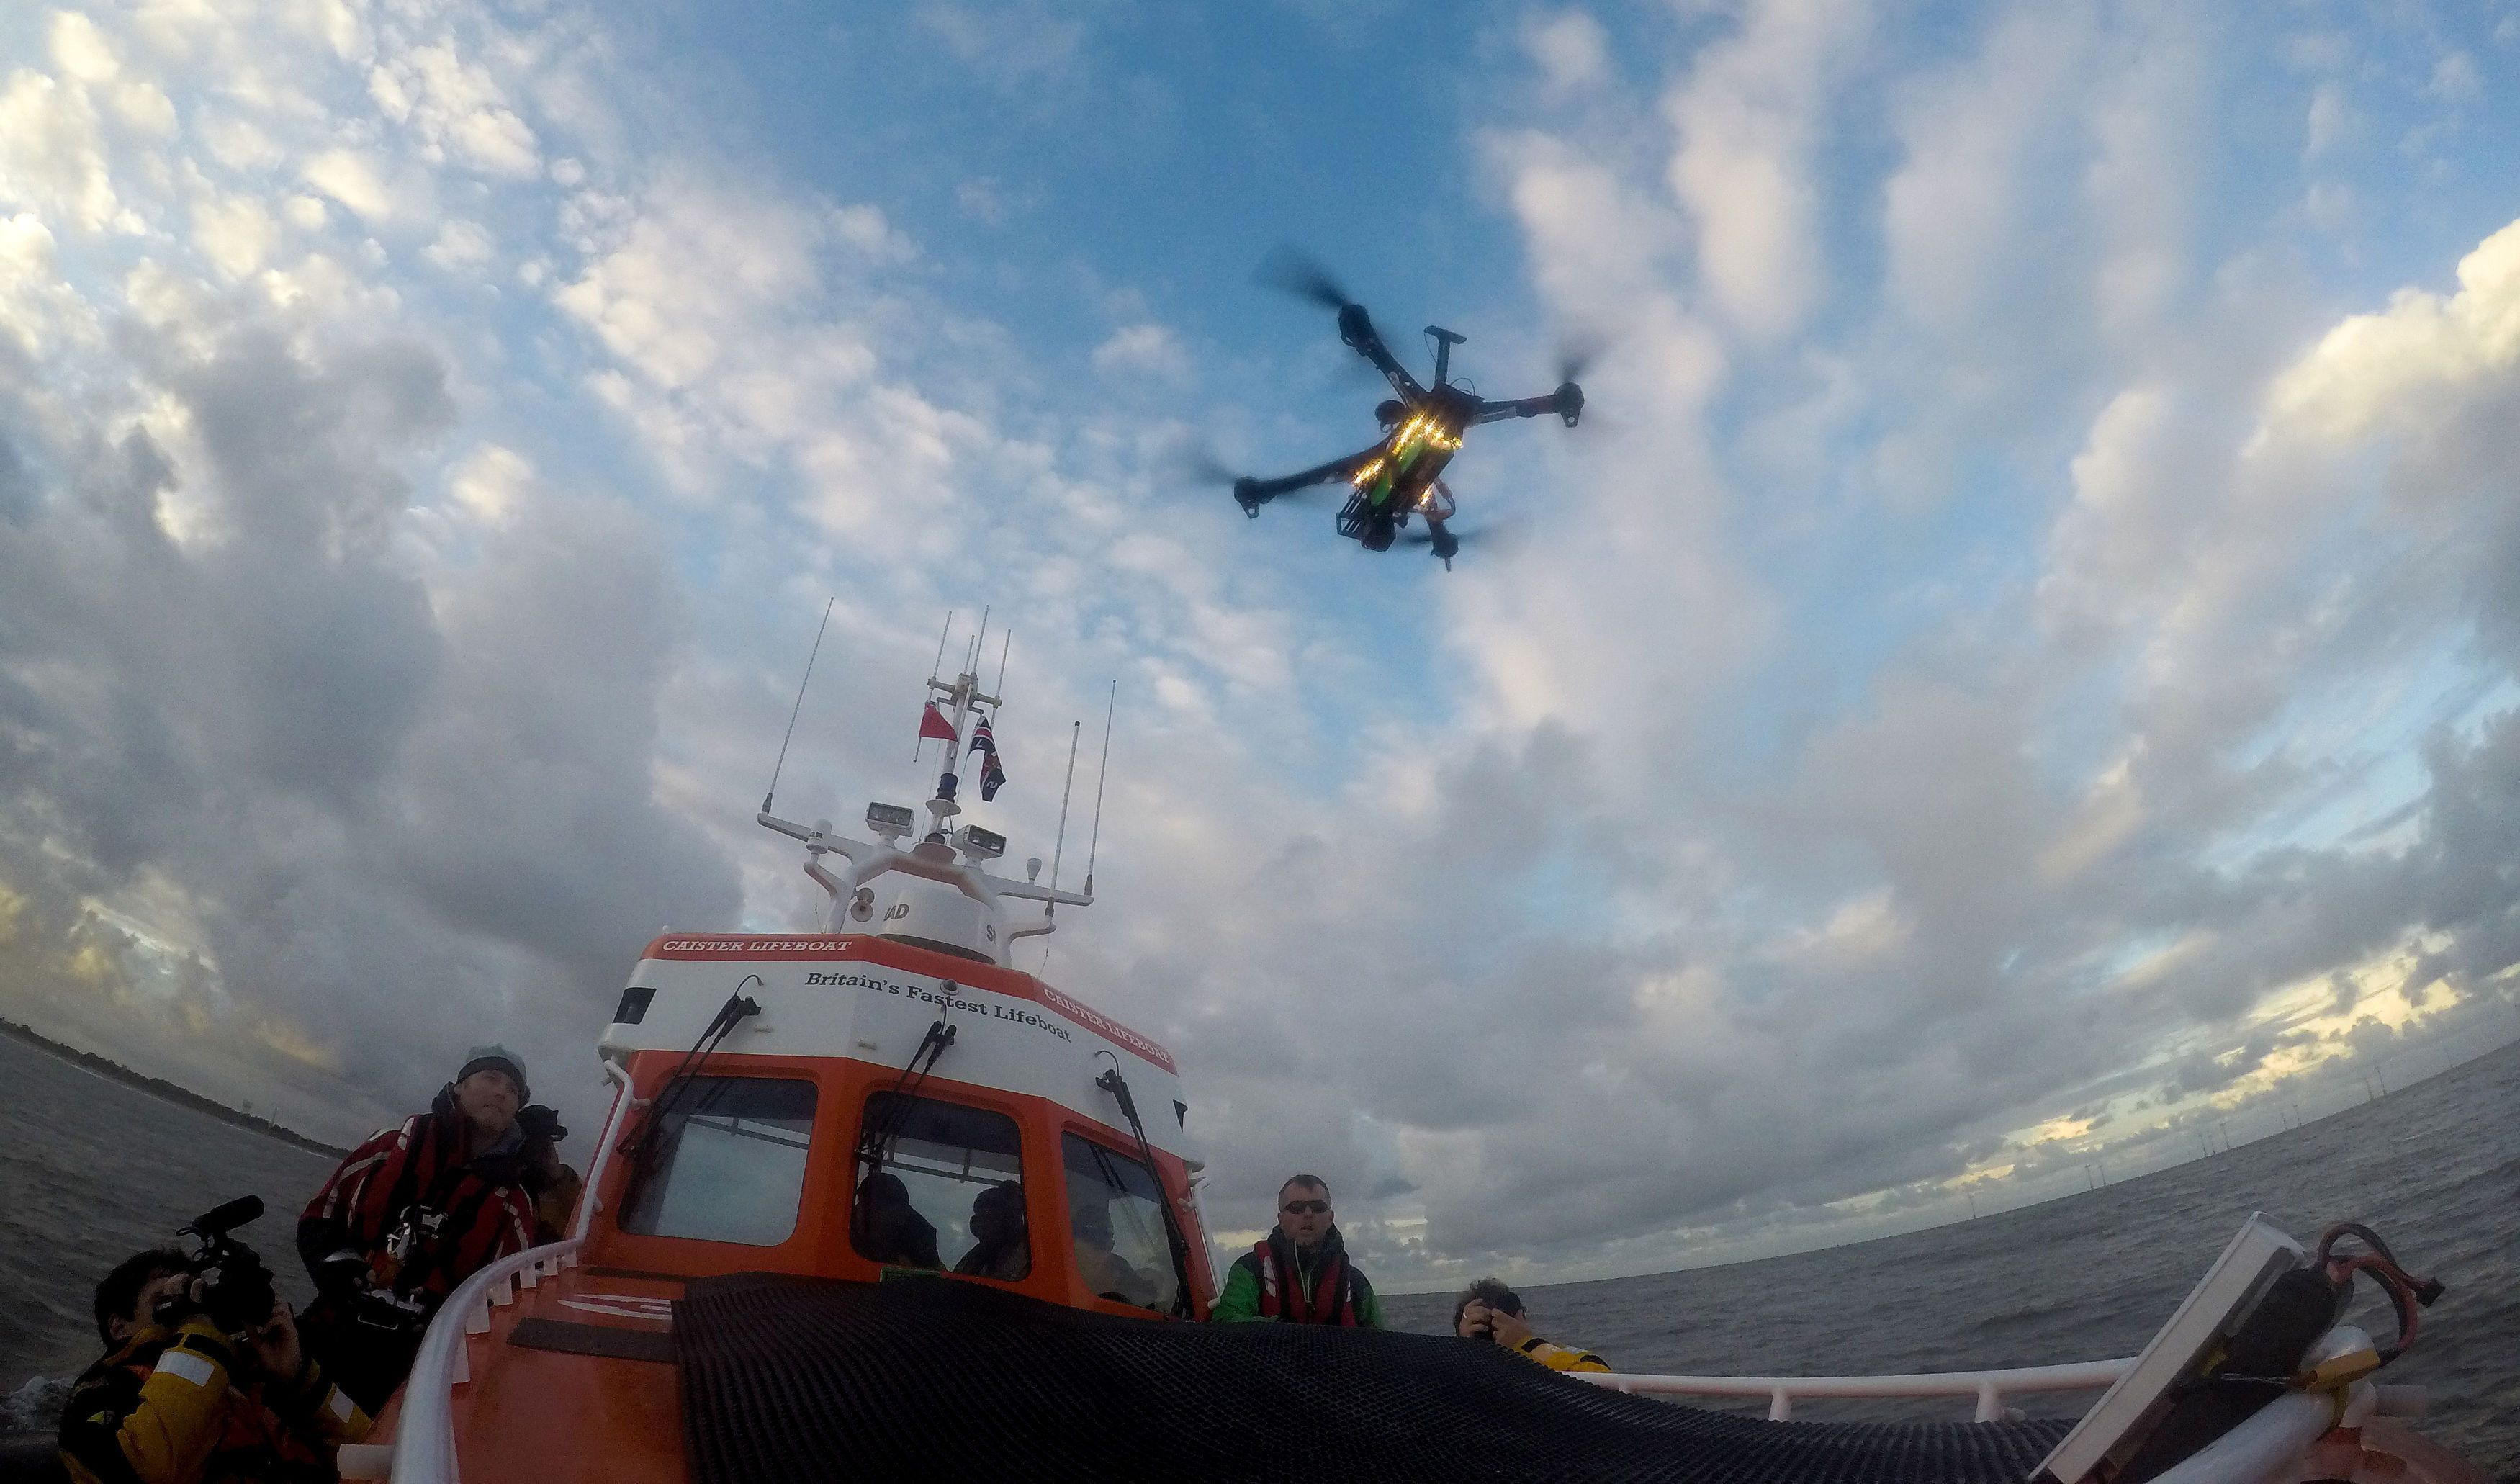 UK Lifeboat Crew Trial Using Drones For Search And